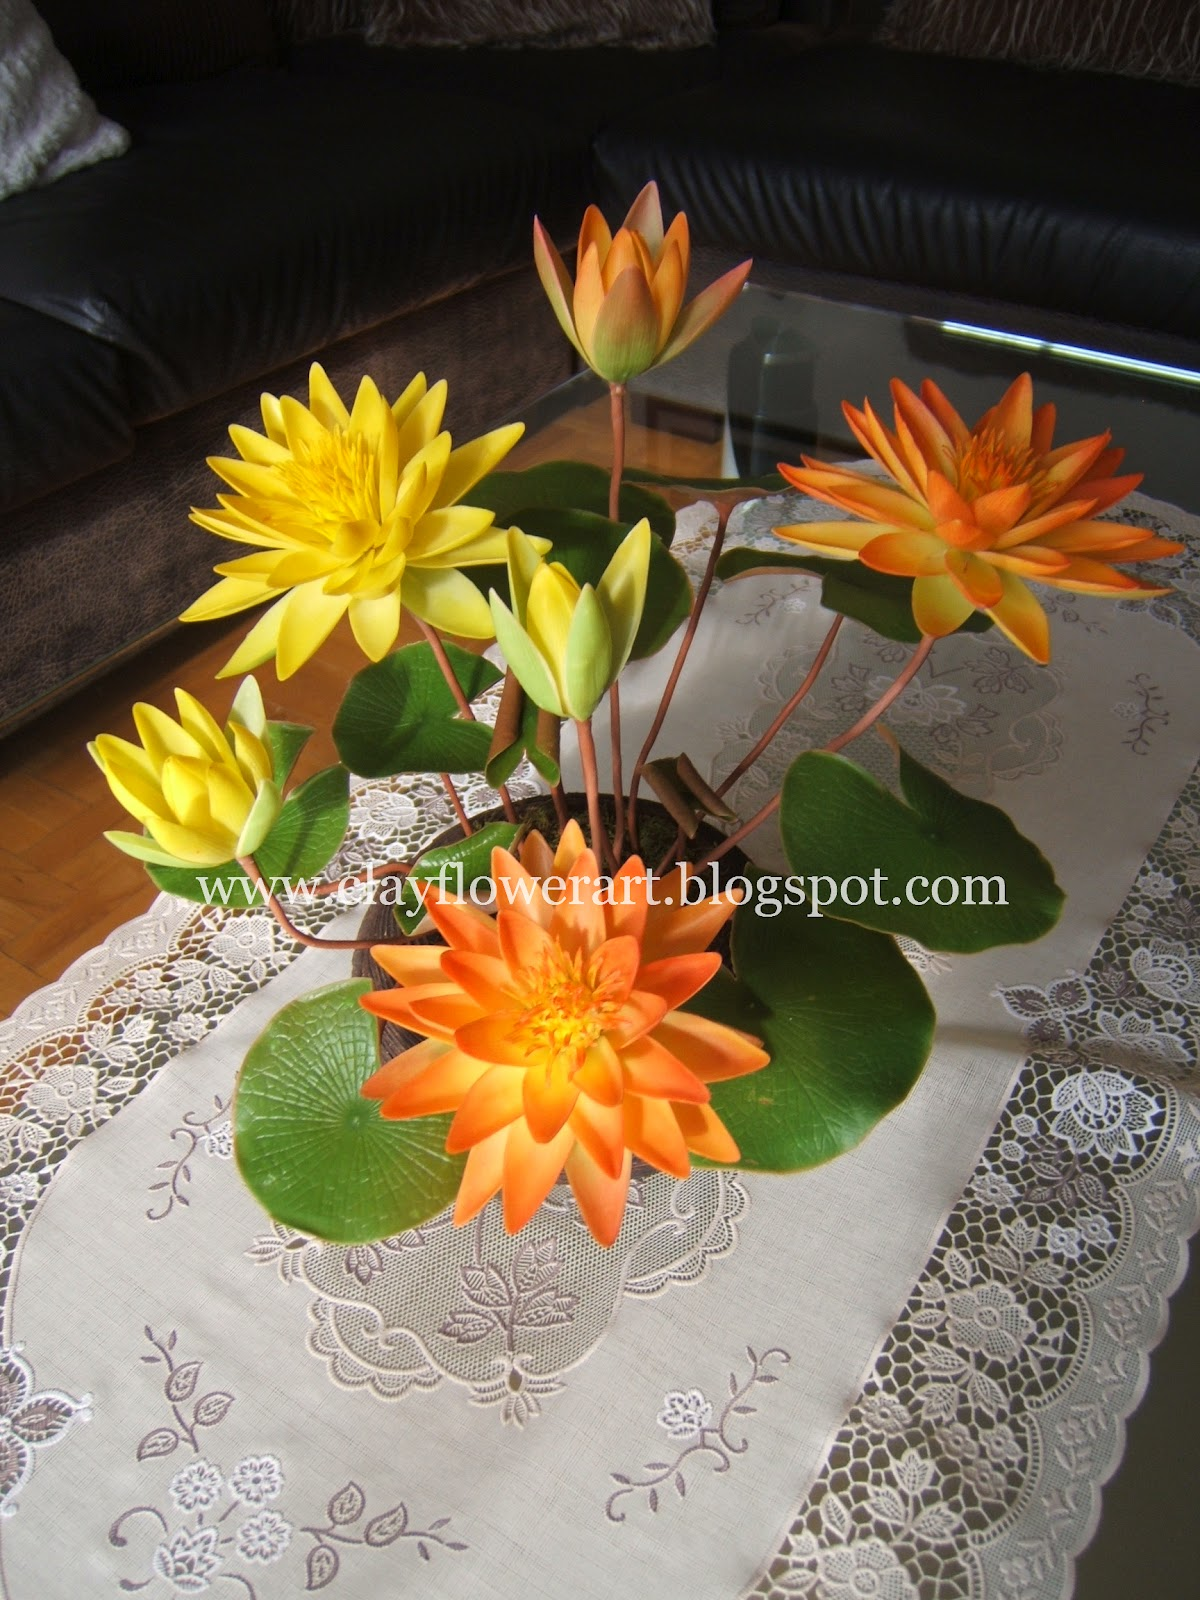 Water lily thai clay flowers clay flower art water lily thai clay flowers izmirmasajfo Gallery